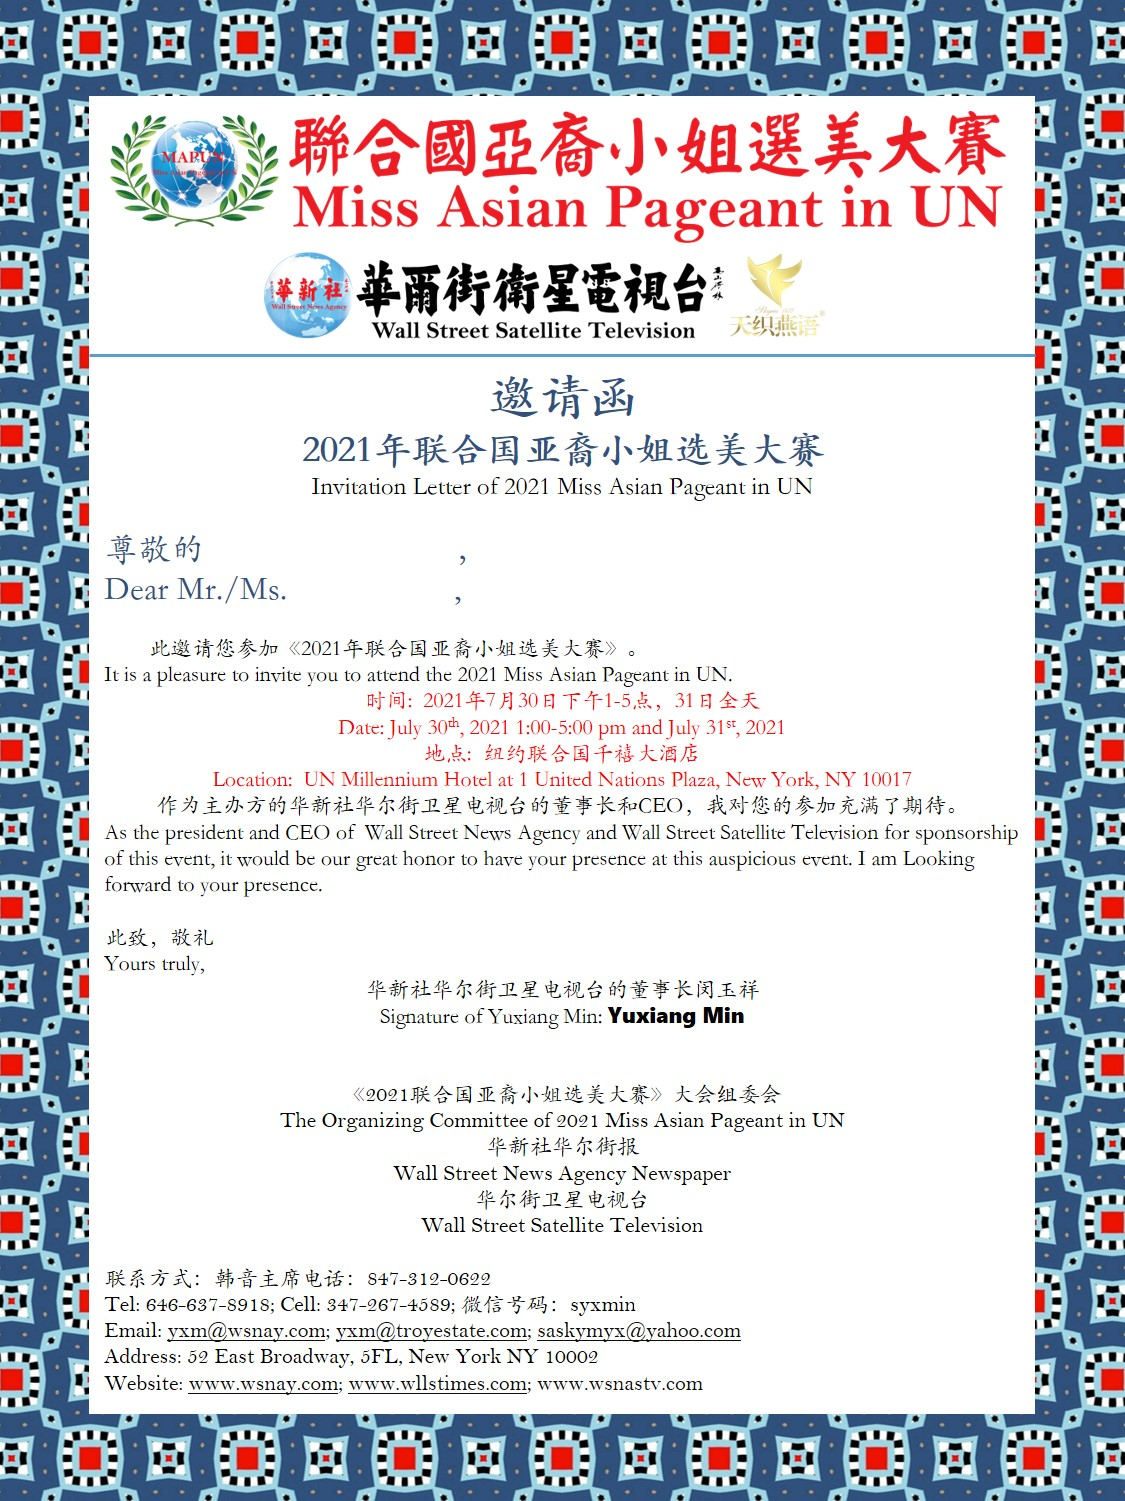 2021 Miss Asian Pageant in UN Invitation Letter 02